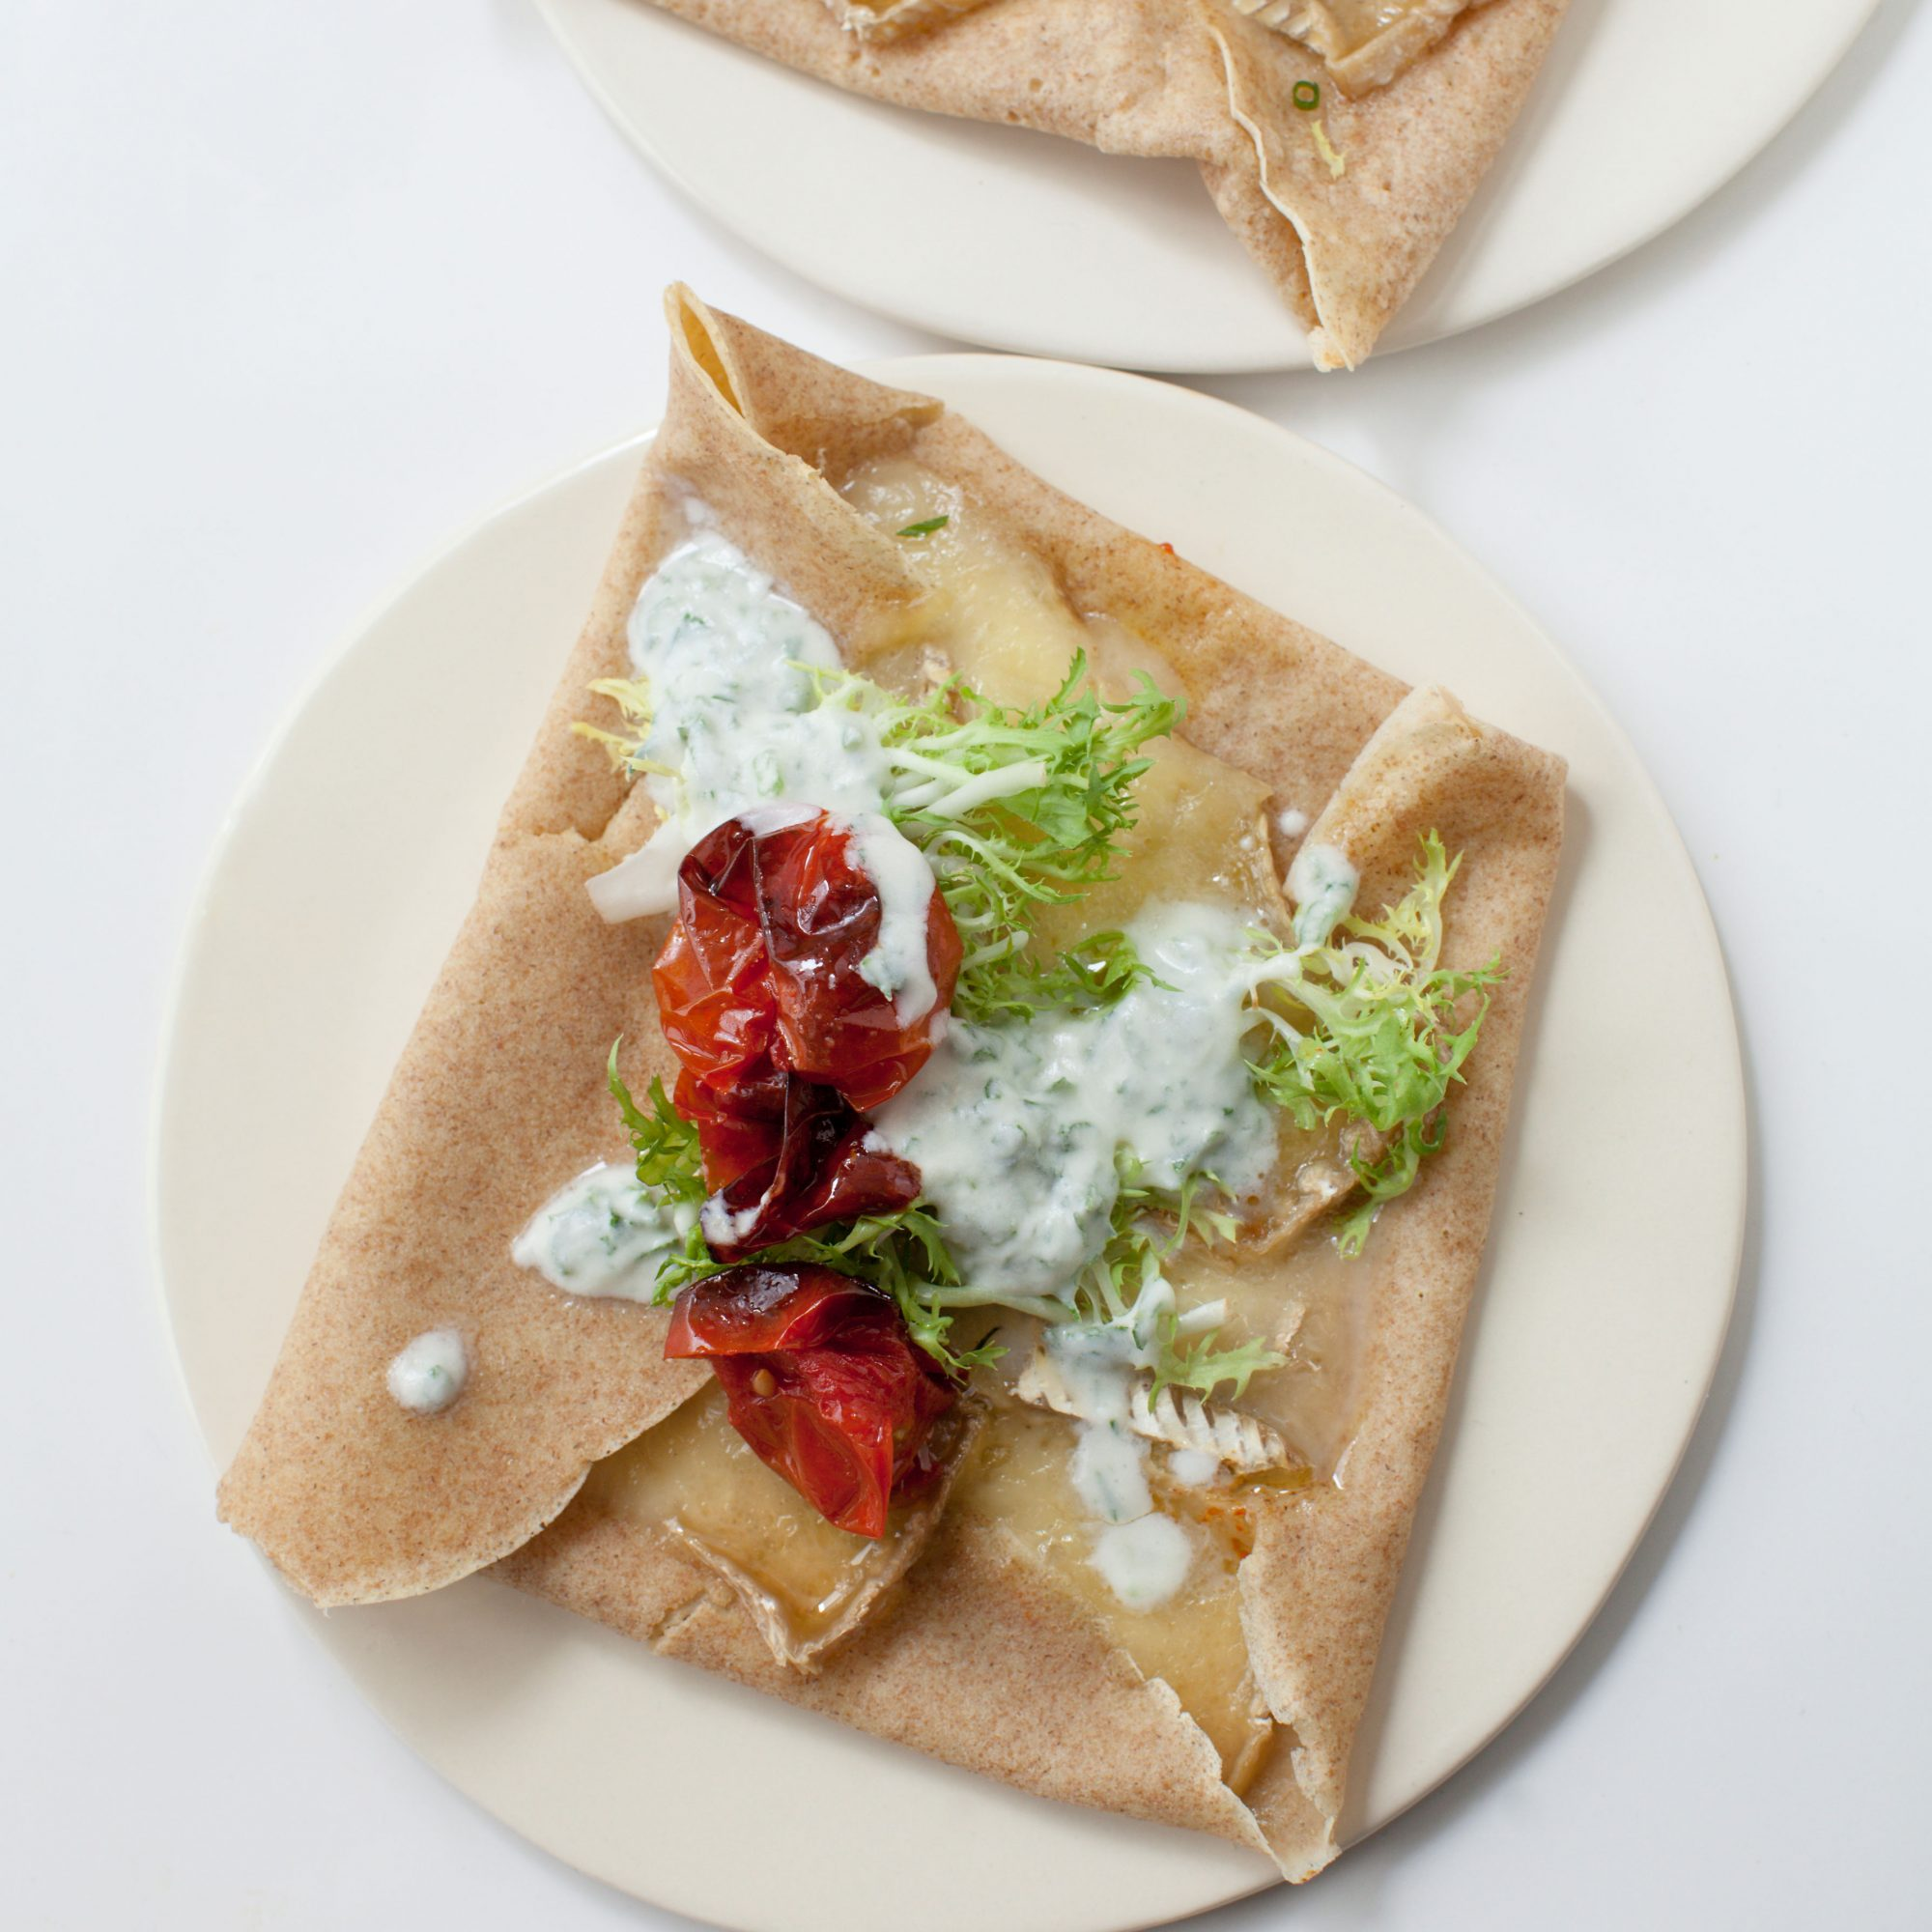 Brie Crêpe Melts with Roasted Tomatoes and Herb-Buttermilk Sauce